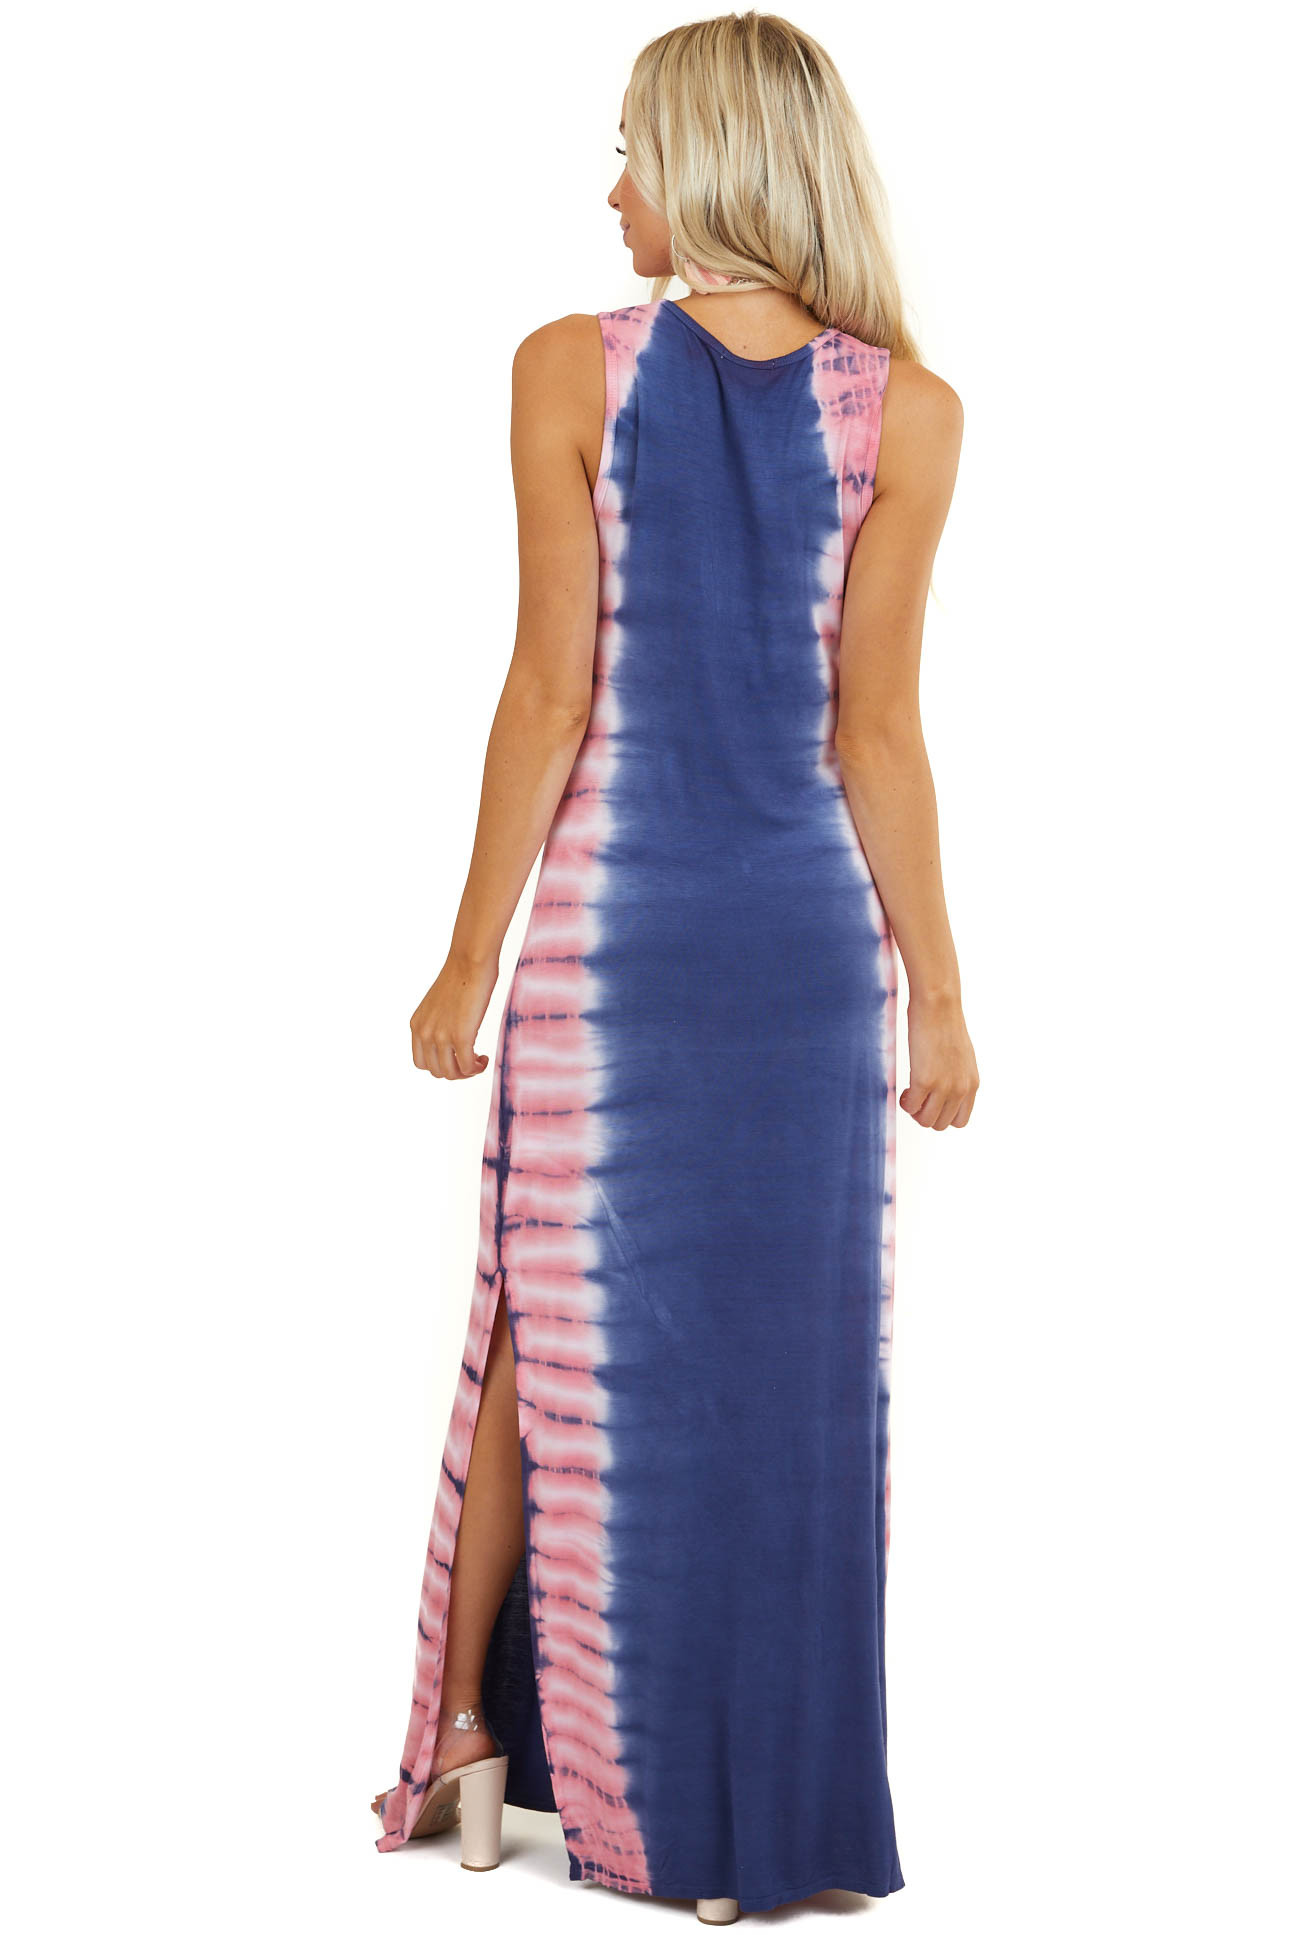 Navy and Pink Tie Dye Sleeveless Maxi Dress with Side Slit